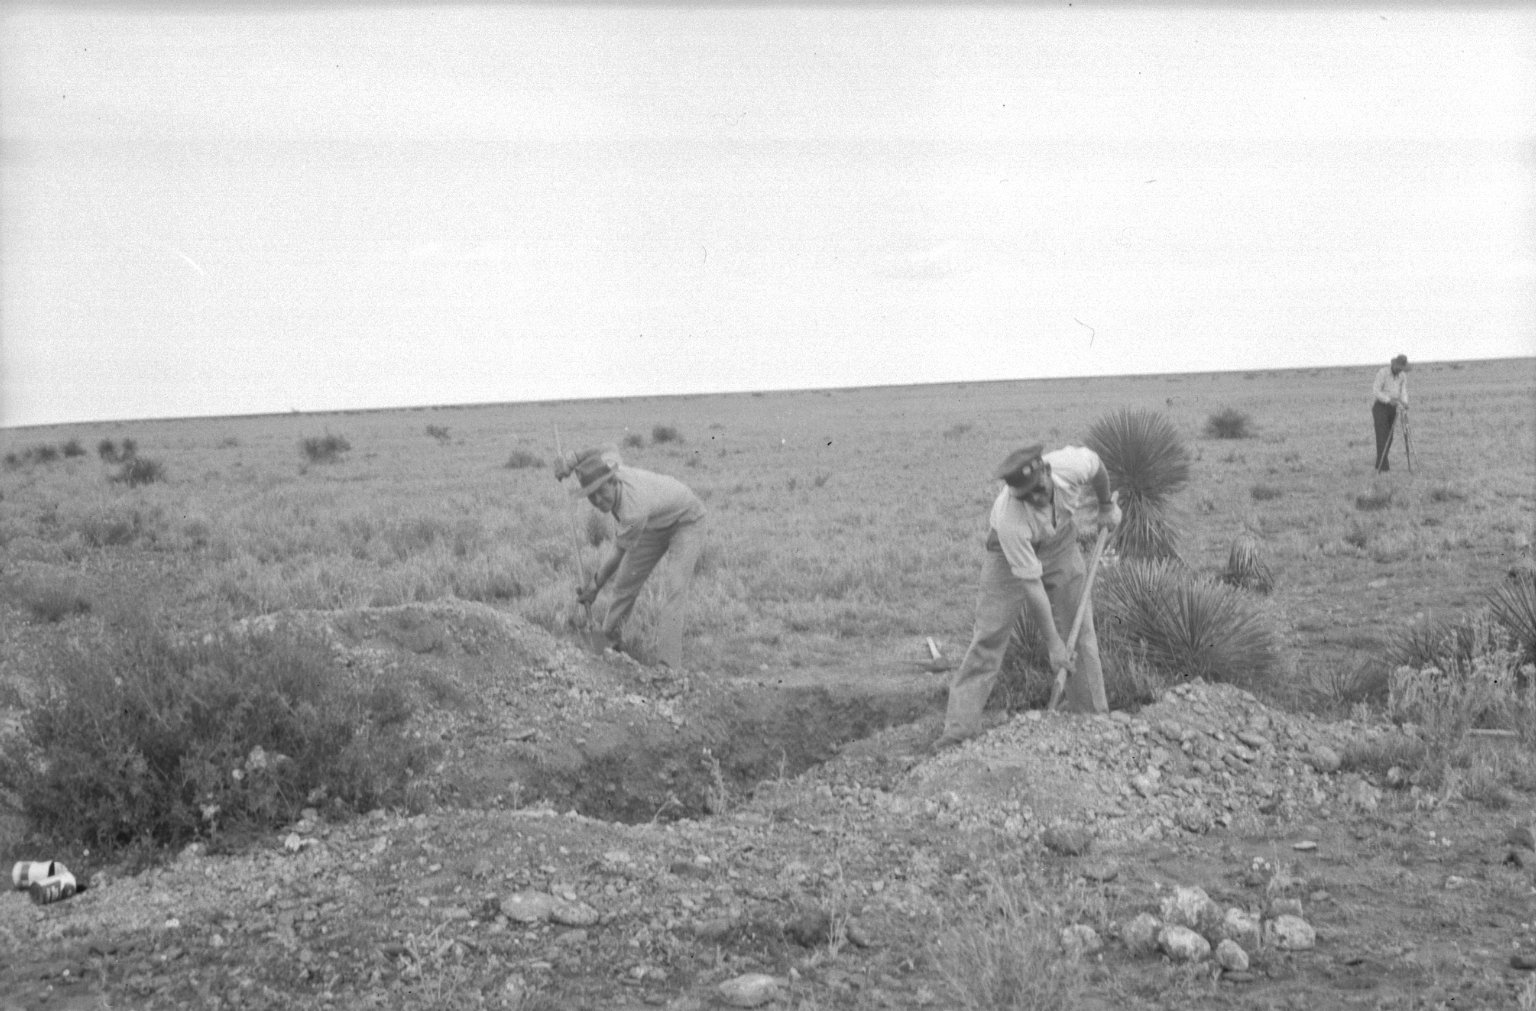 Excavating the crater